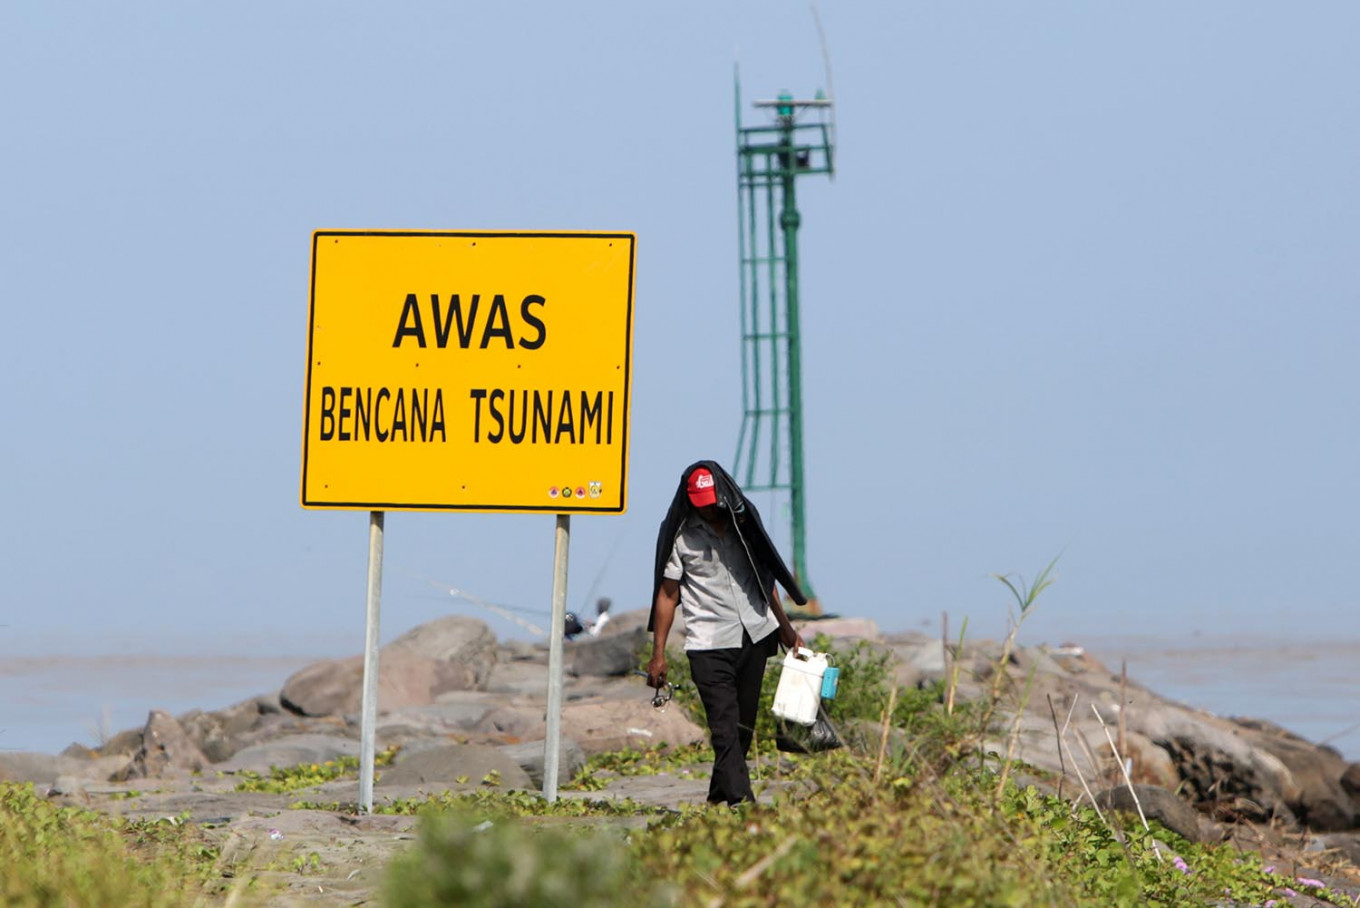 Tsunami technology worth little without community action: BMKG